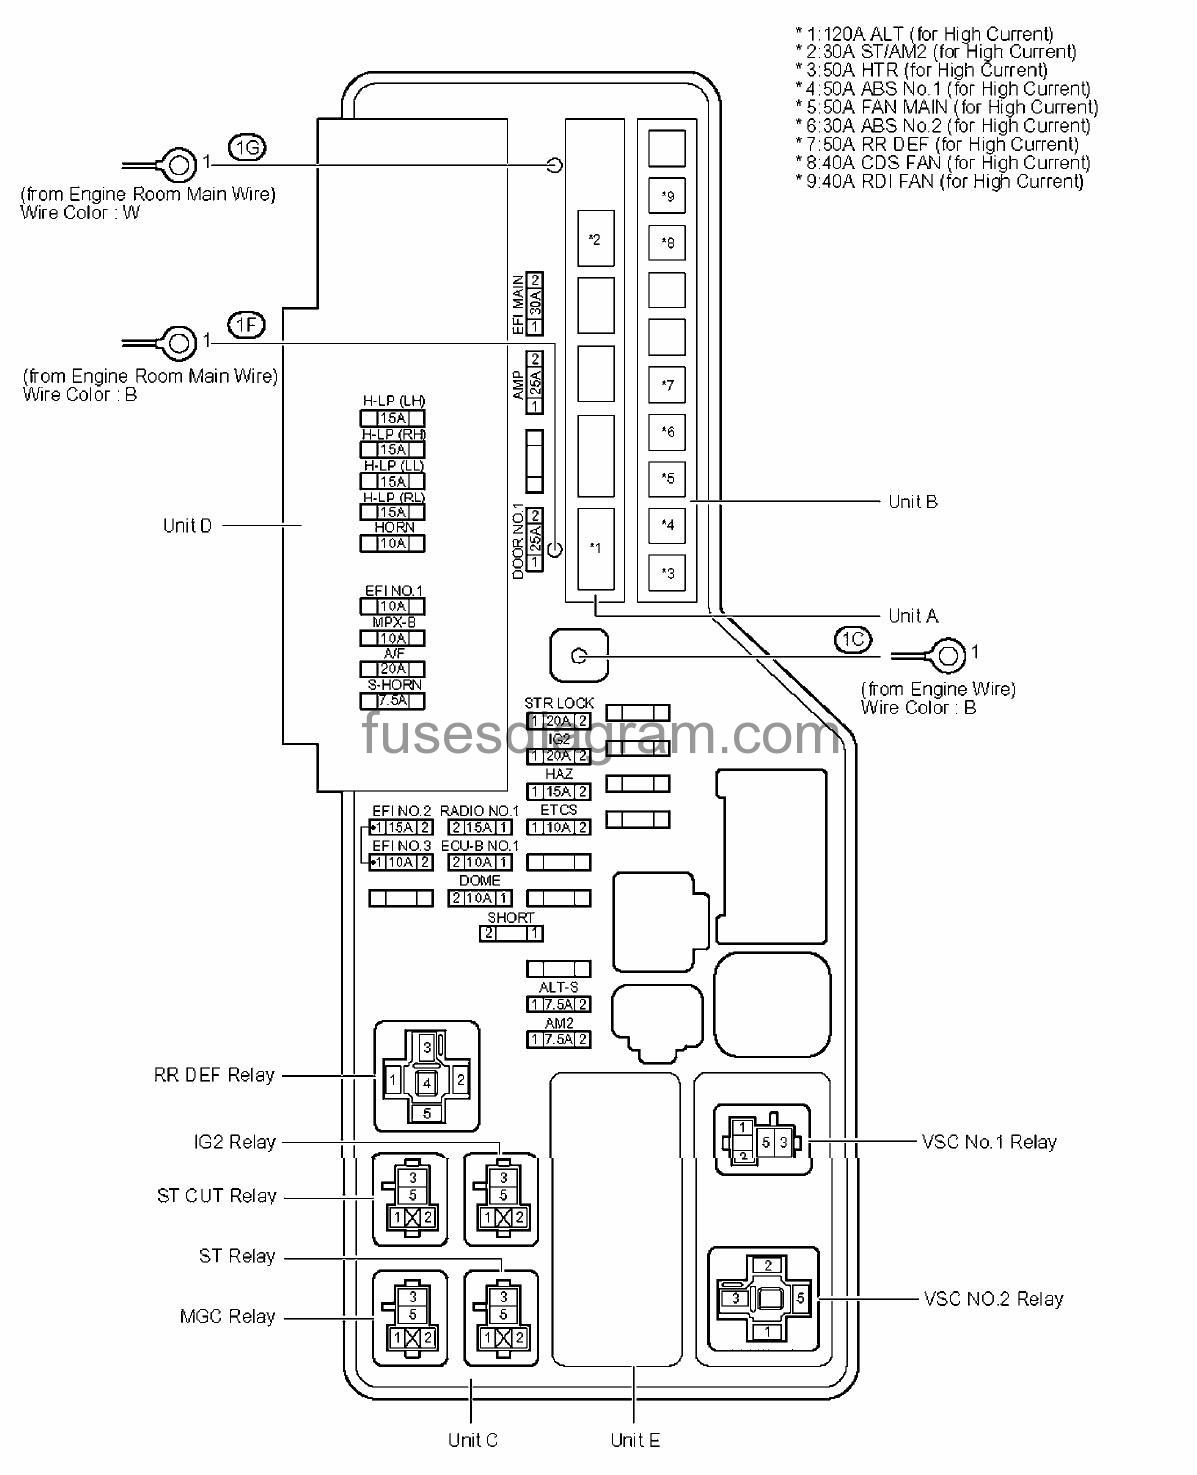 2001 Toyota Avalon Fuse Diagram Wiring Library Montana Box Camry 2000 Simple 2002 Pontiac